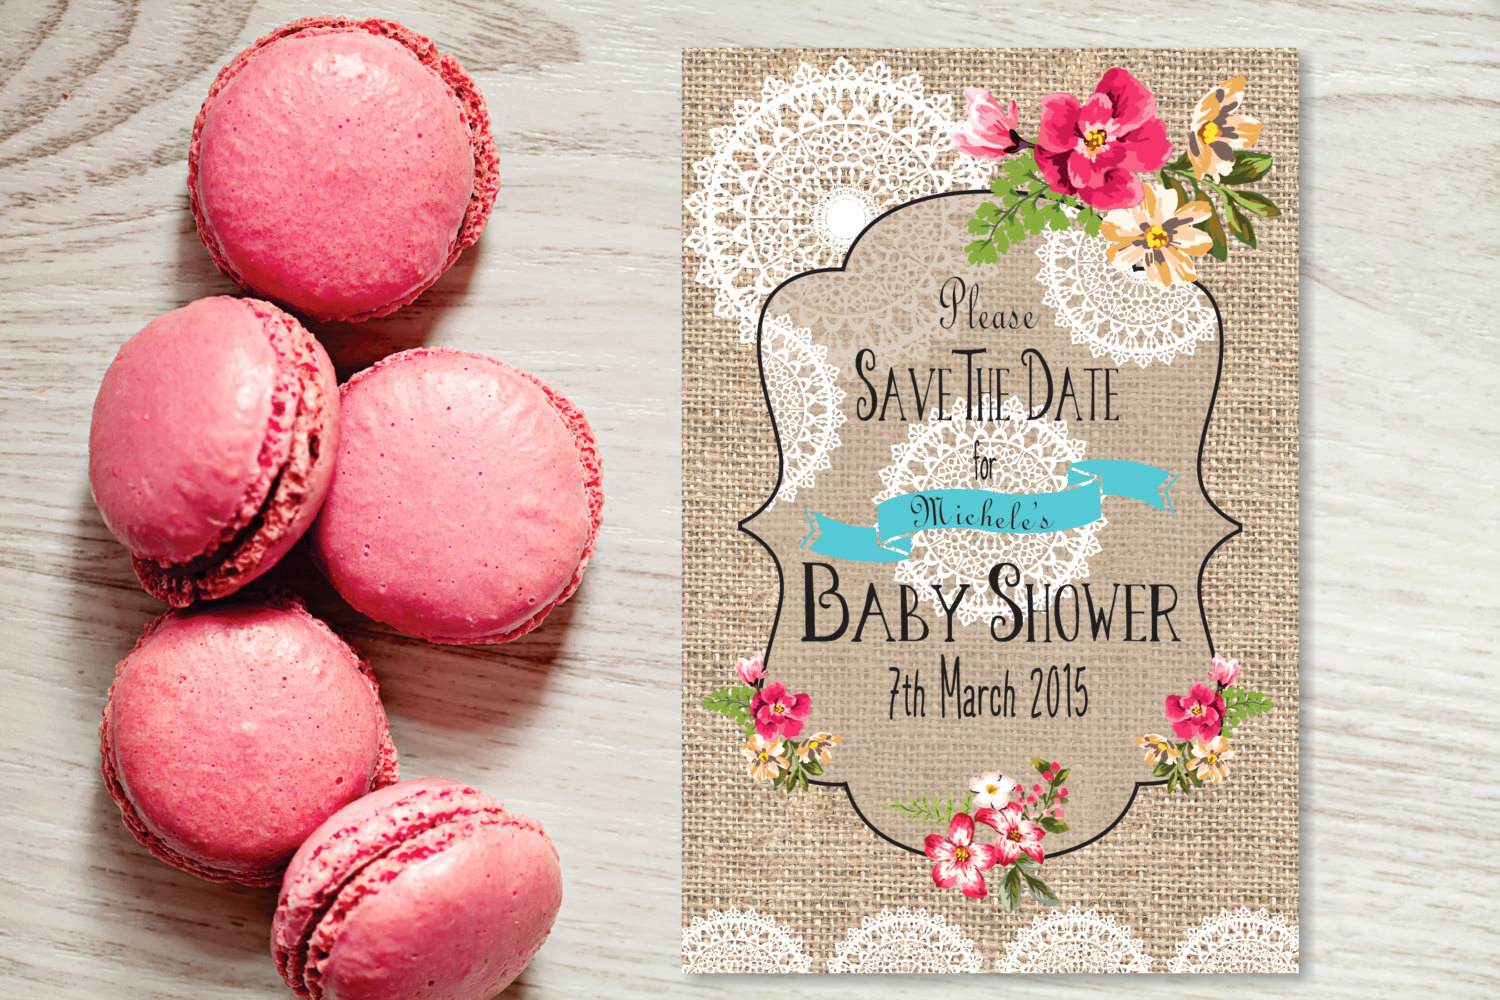 Save the Date Baby Shower Unique Baby Shower Save the Date Card 6 X 4 Burlap and by Gemmedsnail